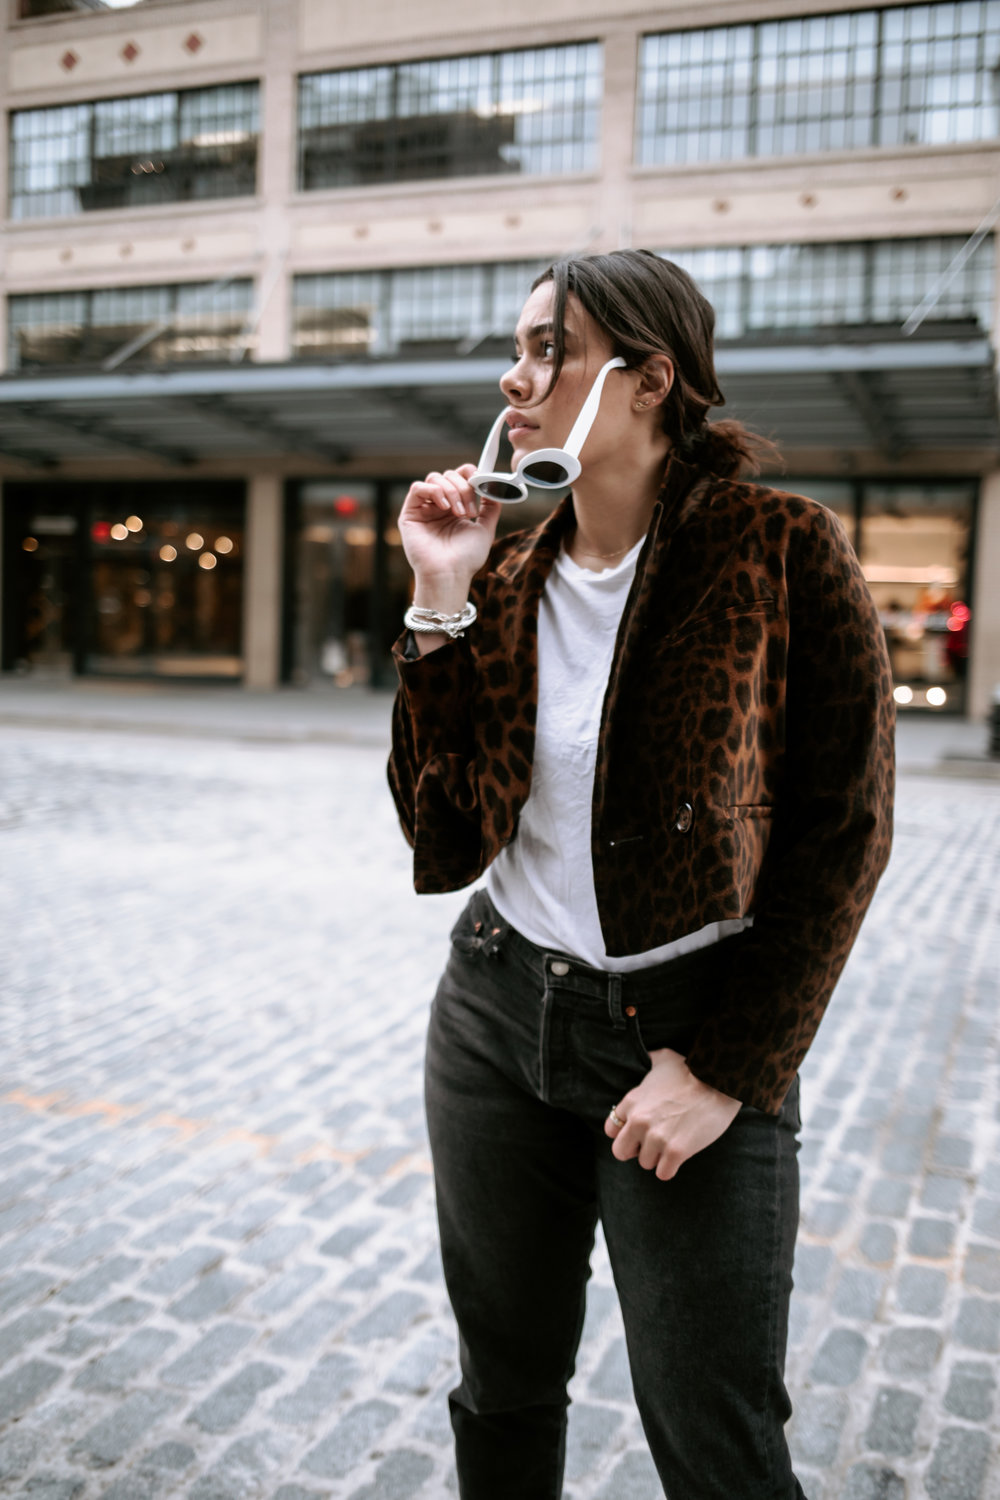 how-to-style-zara-leopard-jacket-white-boots-levis-wedgie-jeans-latina-new-york-city-fashion-blogger-style-operator-winter-fashion.jpg